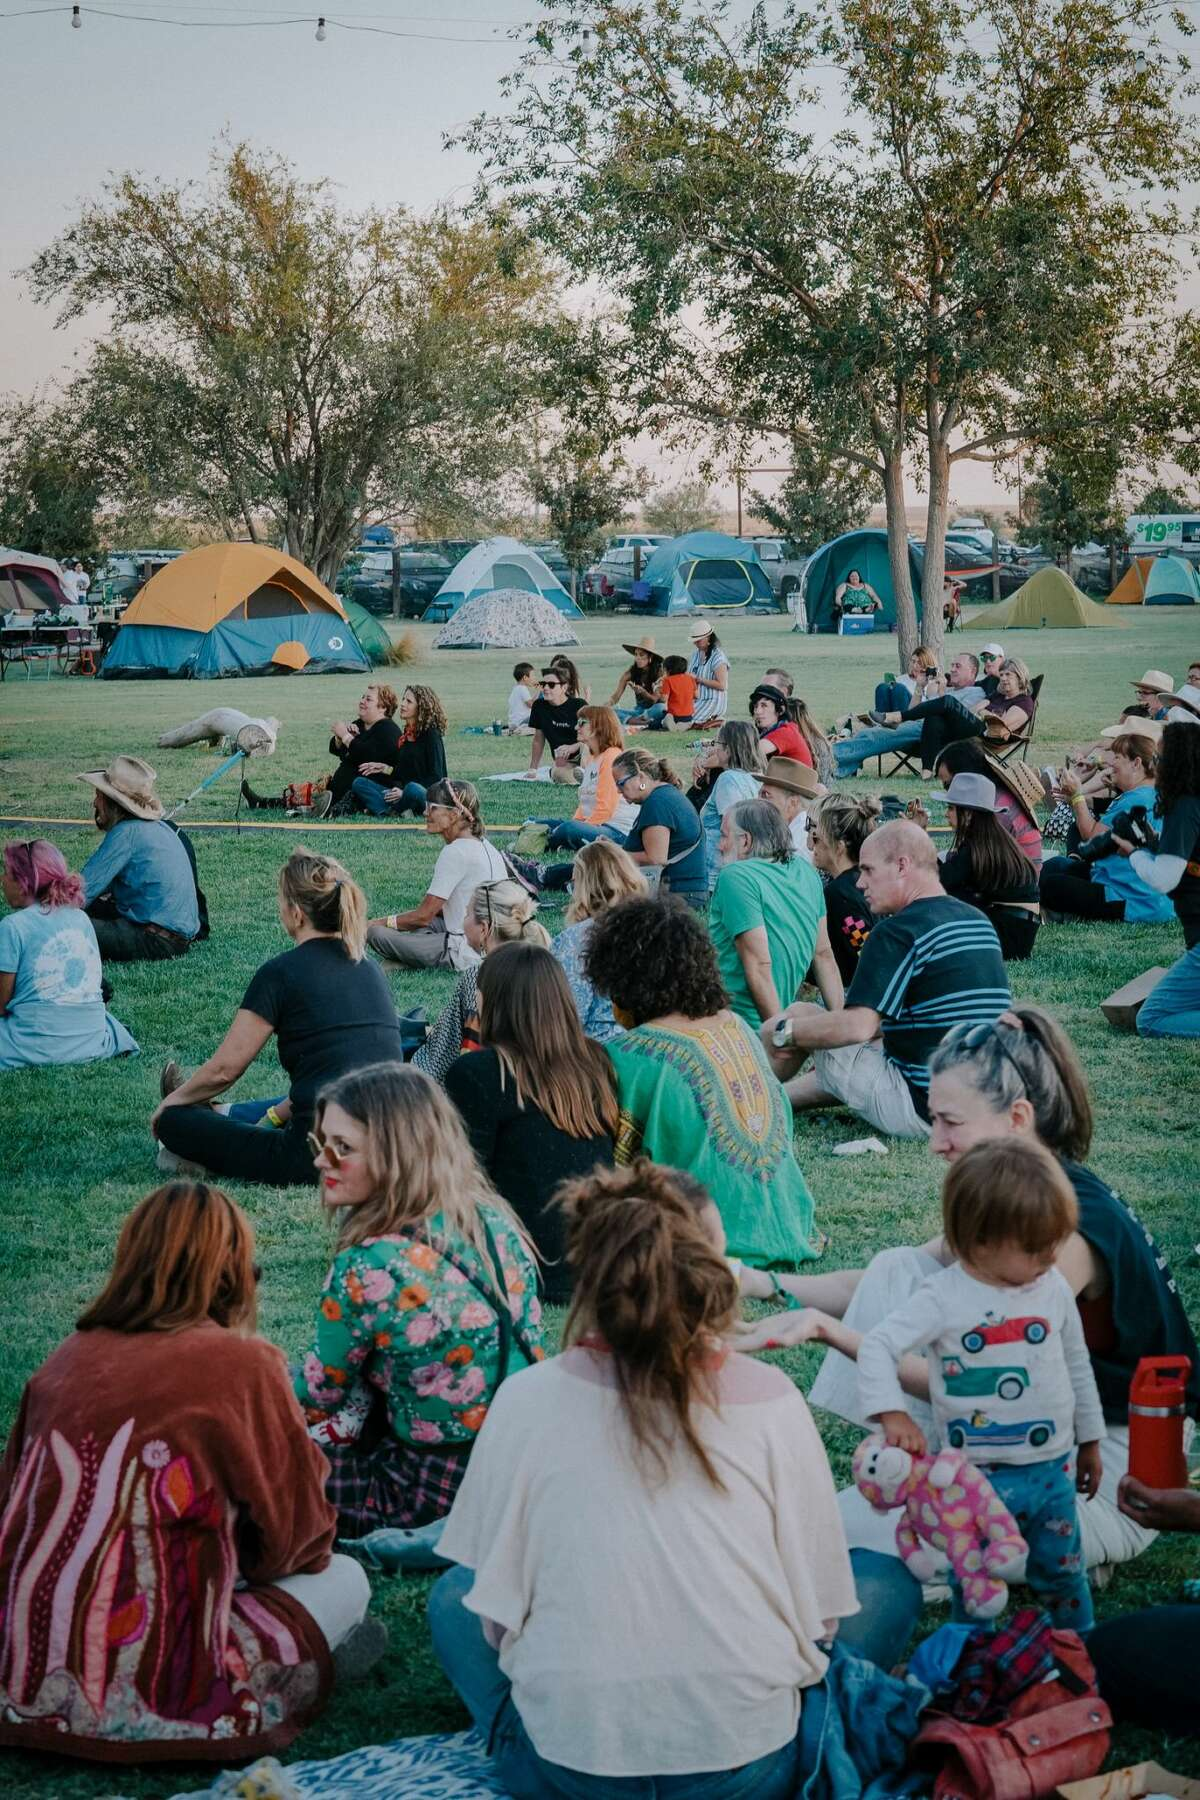 Scenes from the Trans-Pecos Festival of Love + Music from Sept. 22 to Sept. 26 at El Cosmico in Marfa.